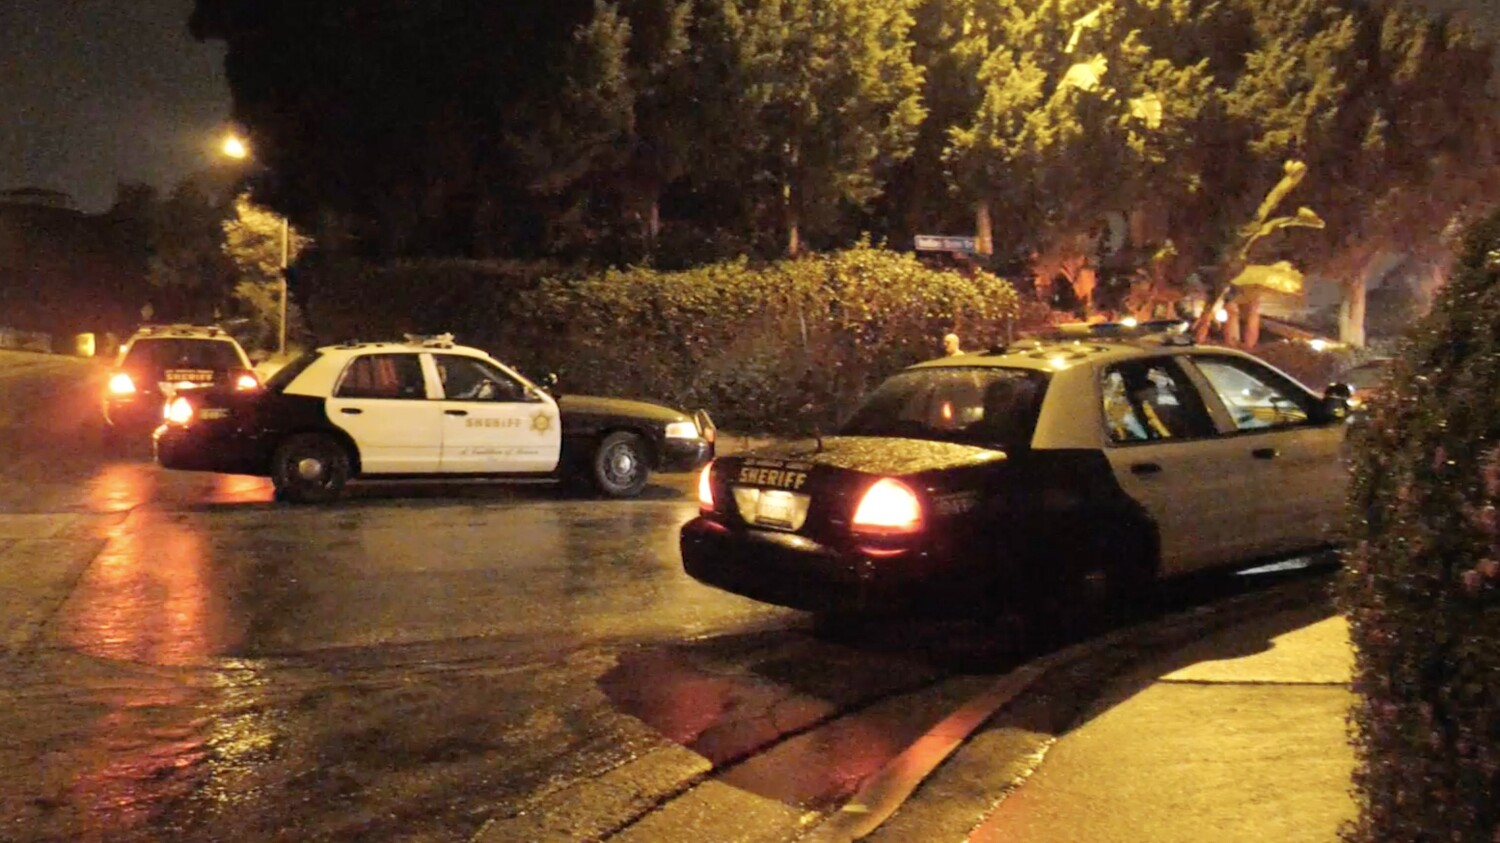 5 residents, including child, are zip-tied during home invasion in Whittier